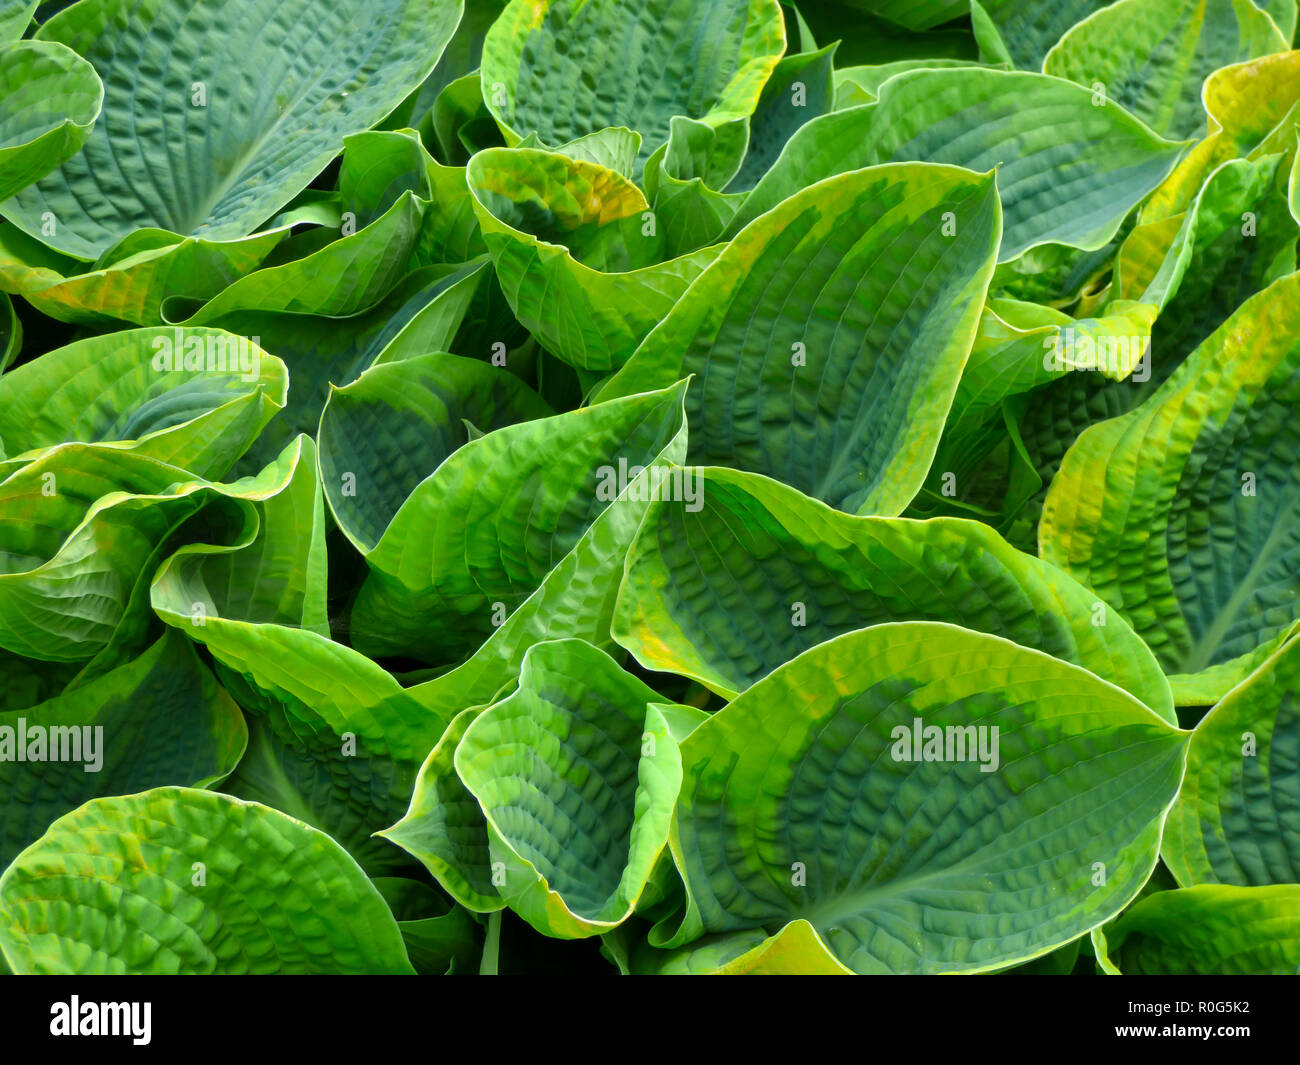 Variegated Hosta Plant Leaves Stock Photos Variegated Hosta Plant